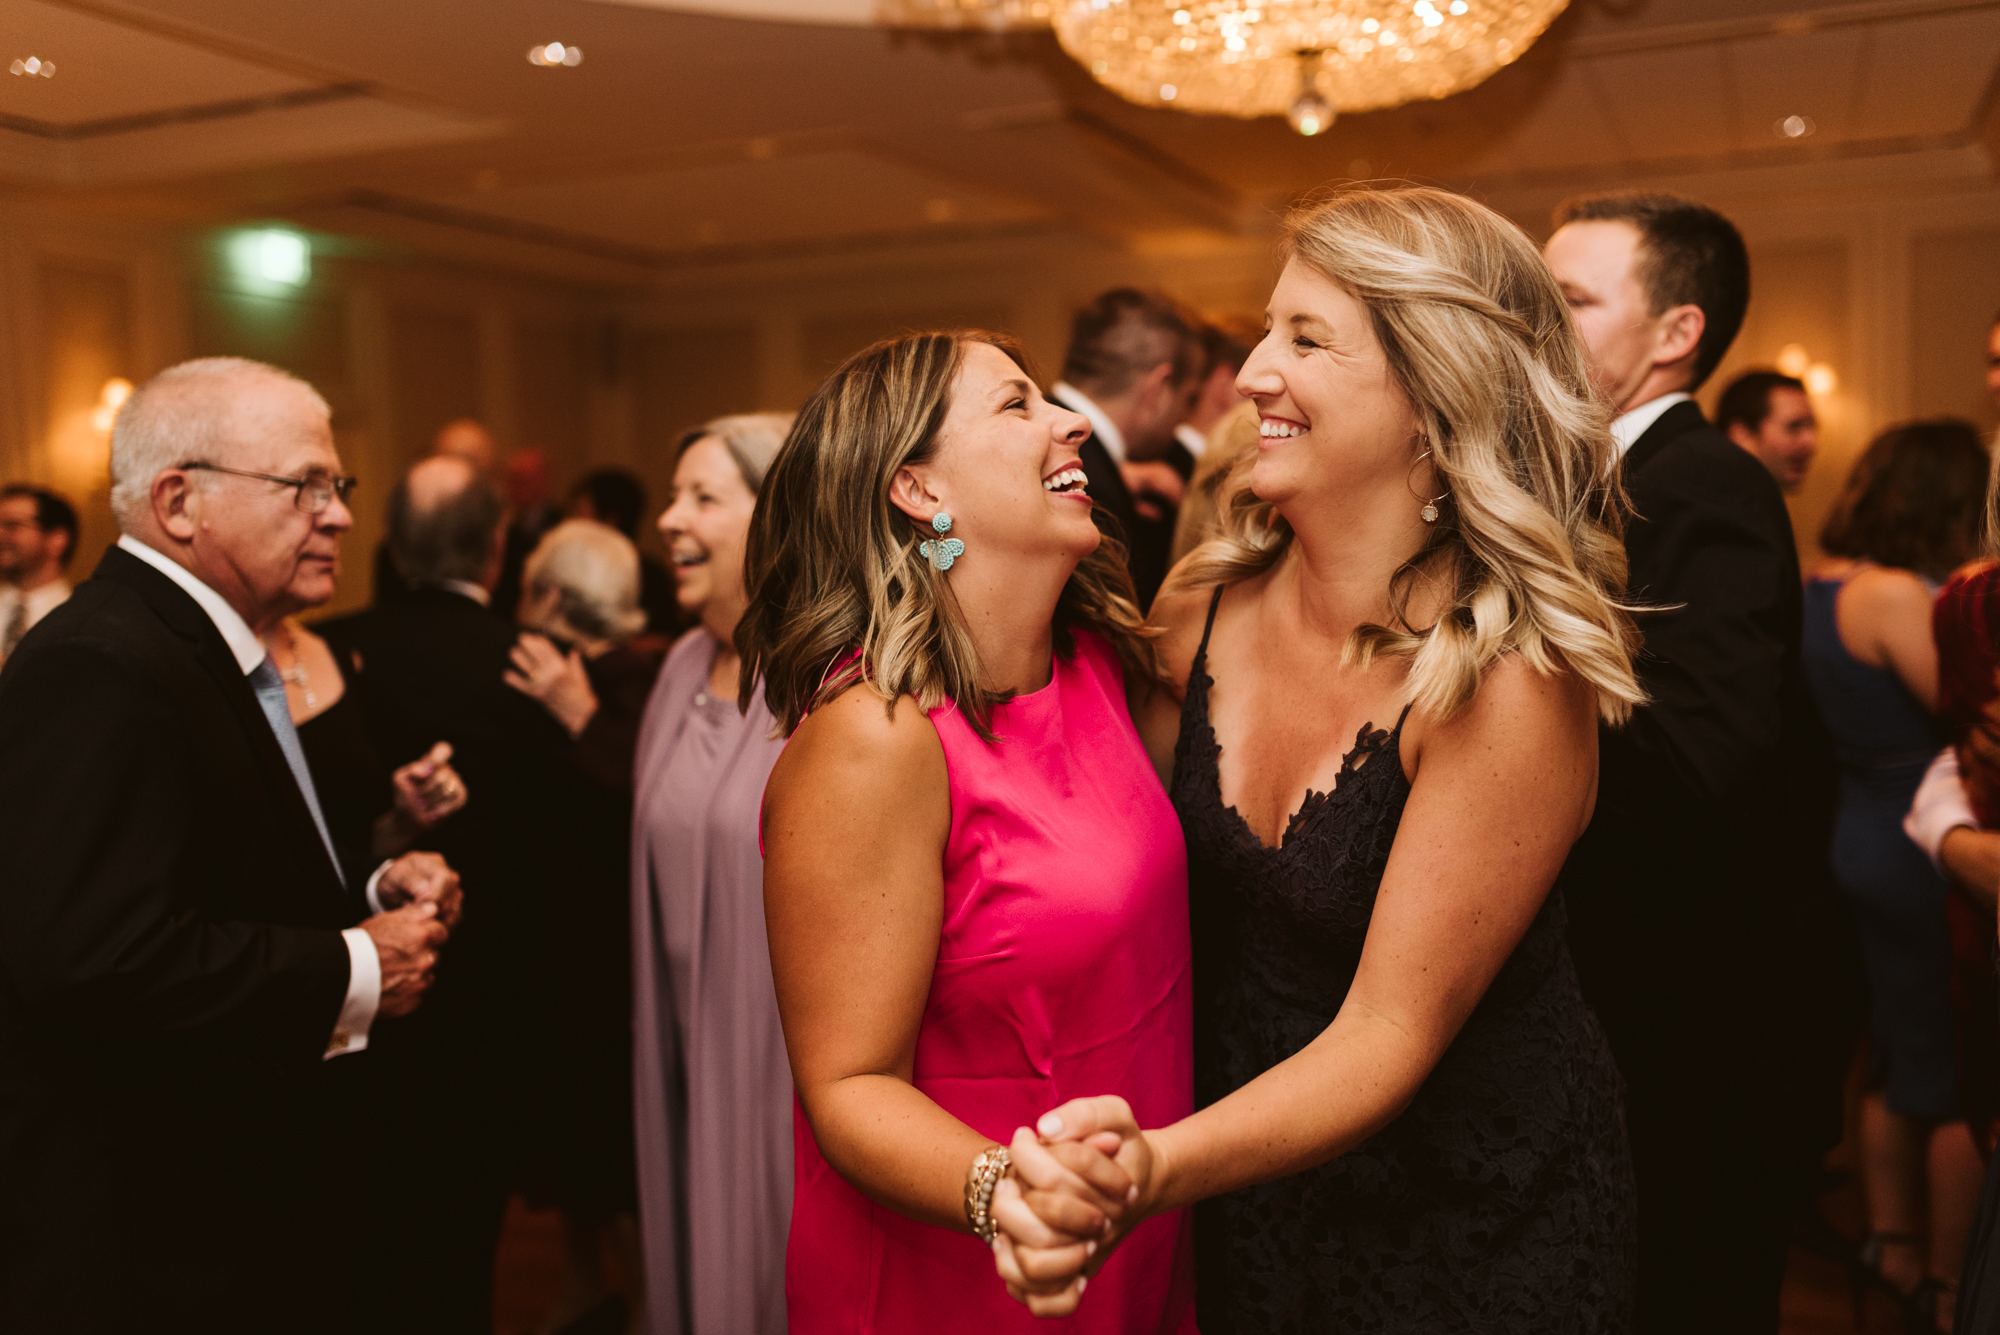 Elegant, Columbia Country Club, Chevy Chase Maryland, Baltimore Wedding Photographer, Classic, Traditional, Two Women Dancing at Wedding Reception, Wedding Guests Laughing on Dance Floor